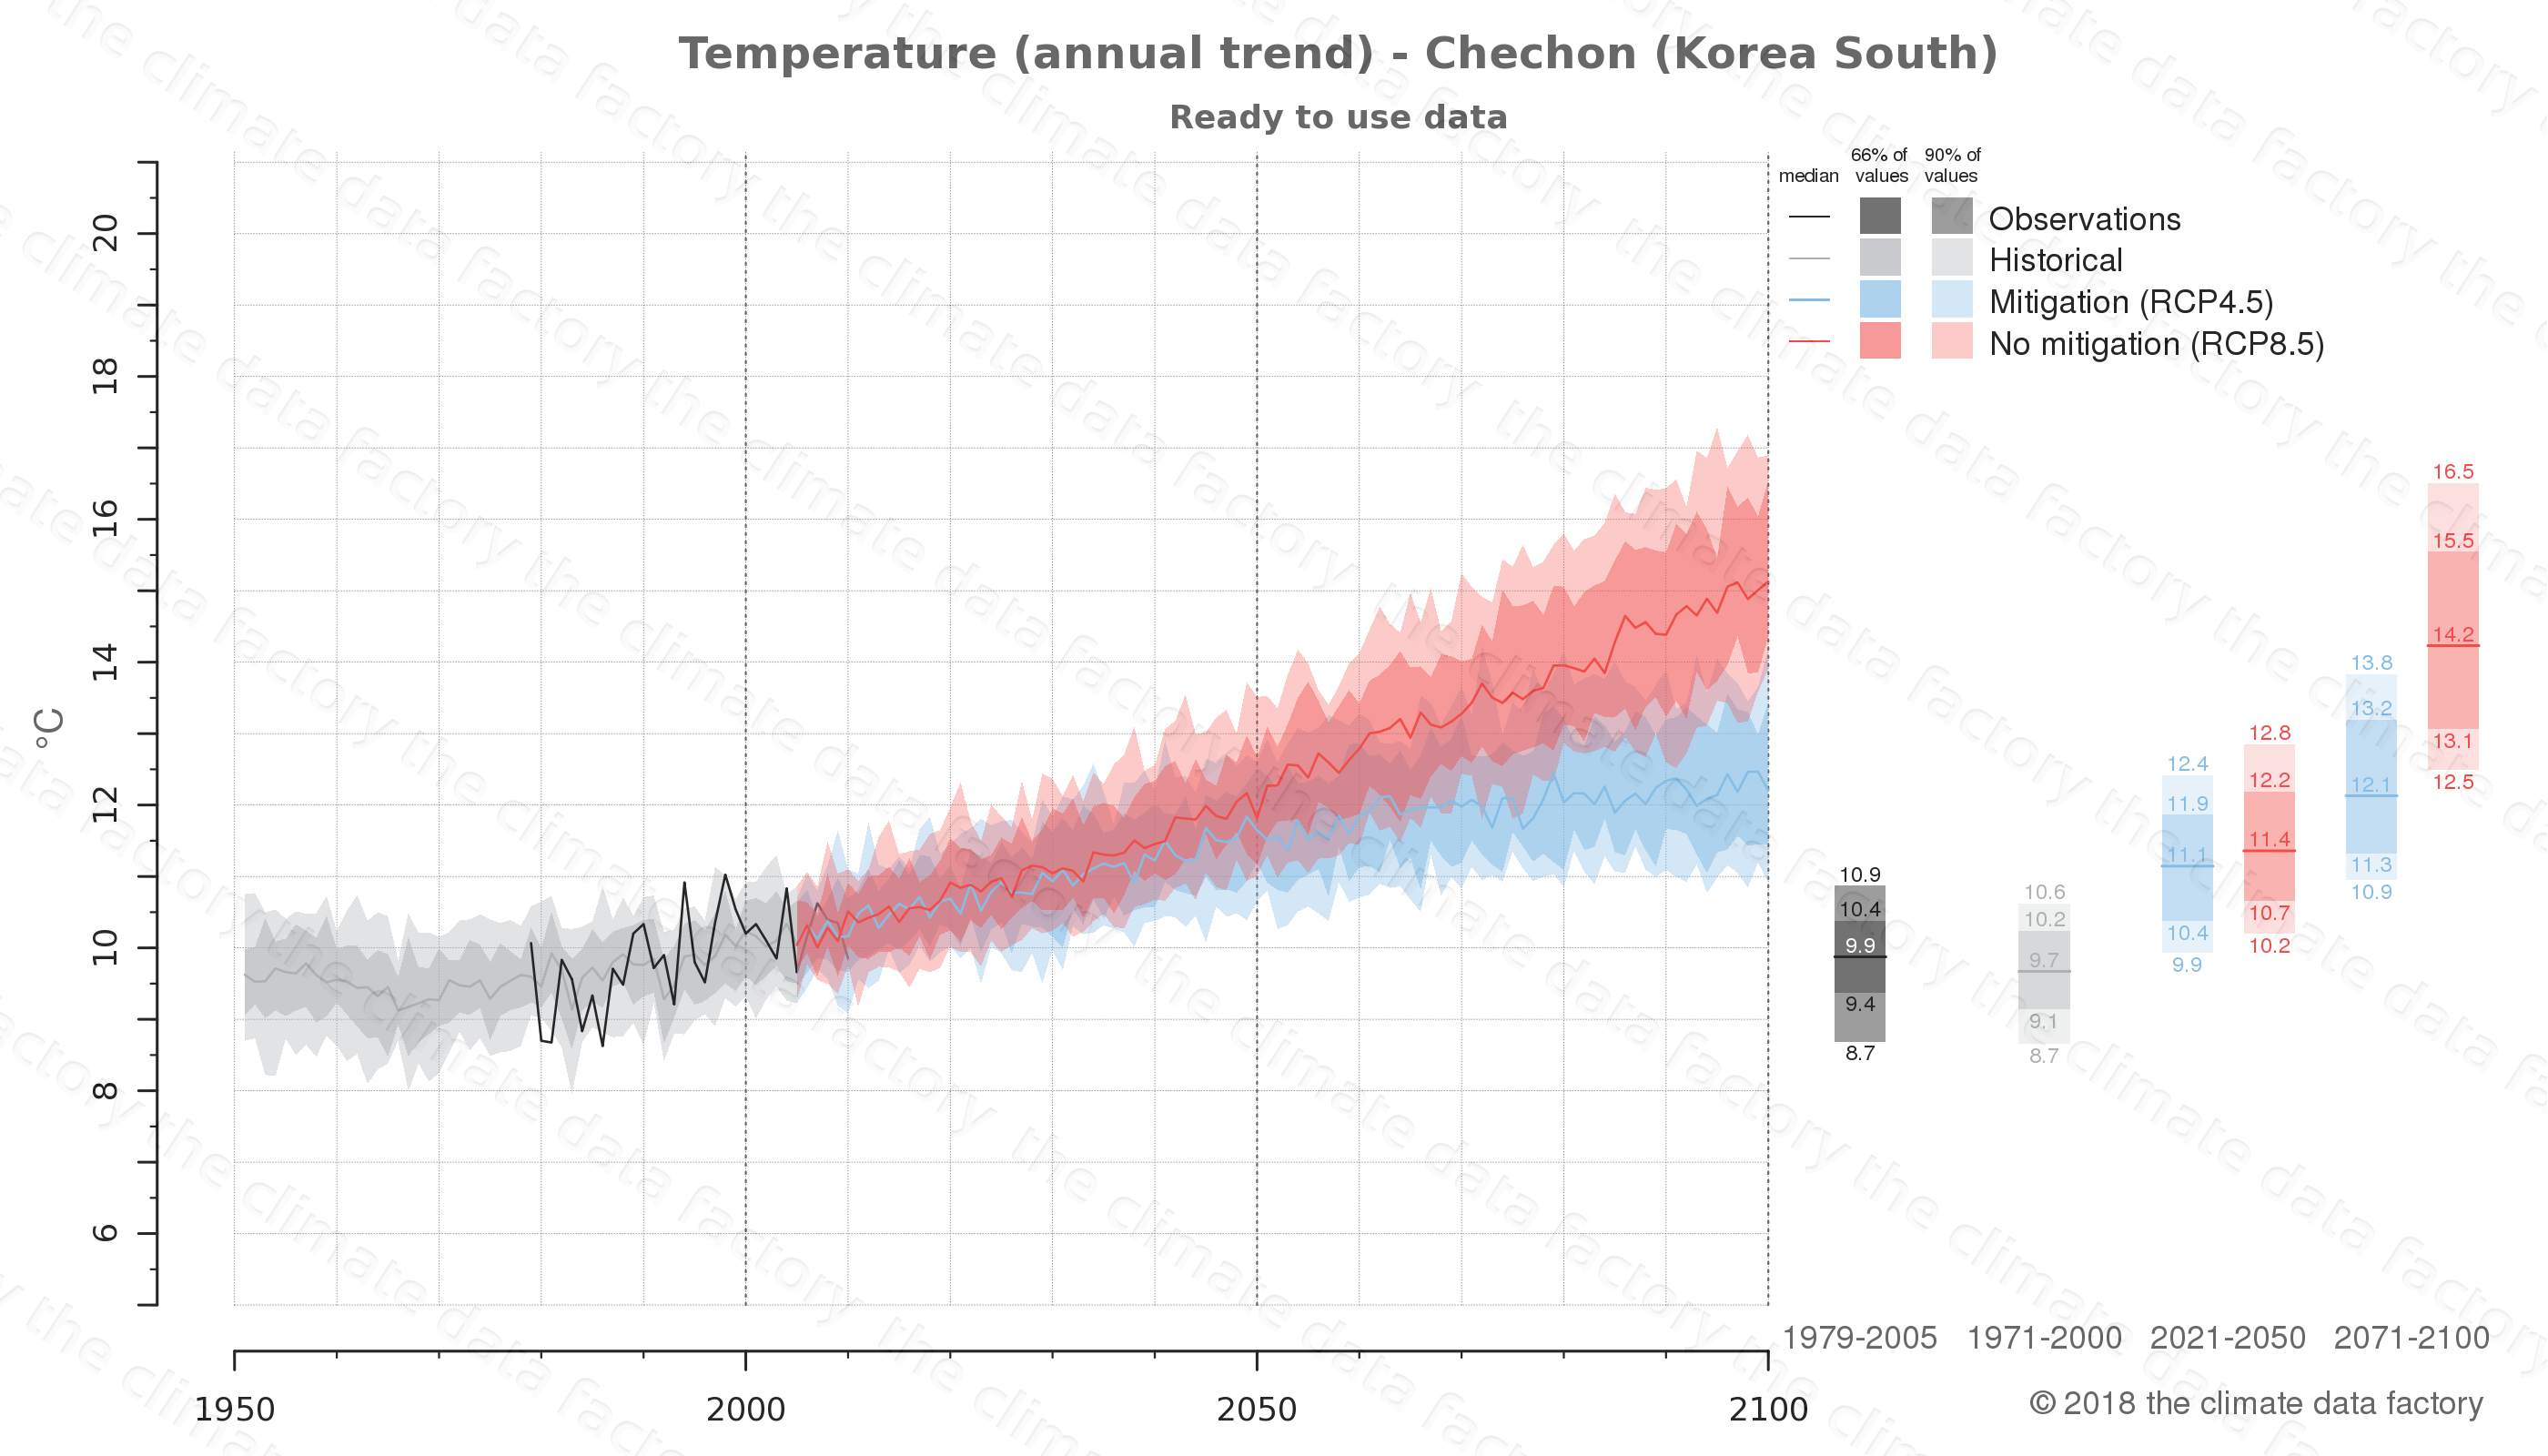 climate change data policy adaptation climate graph city data temperature chechon south korea